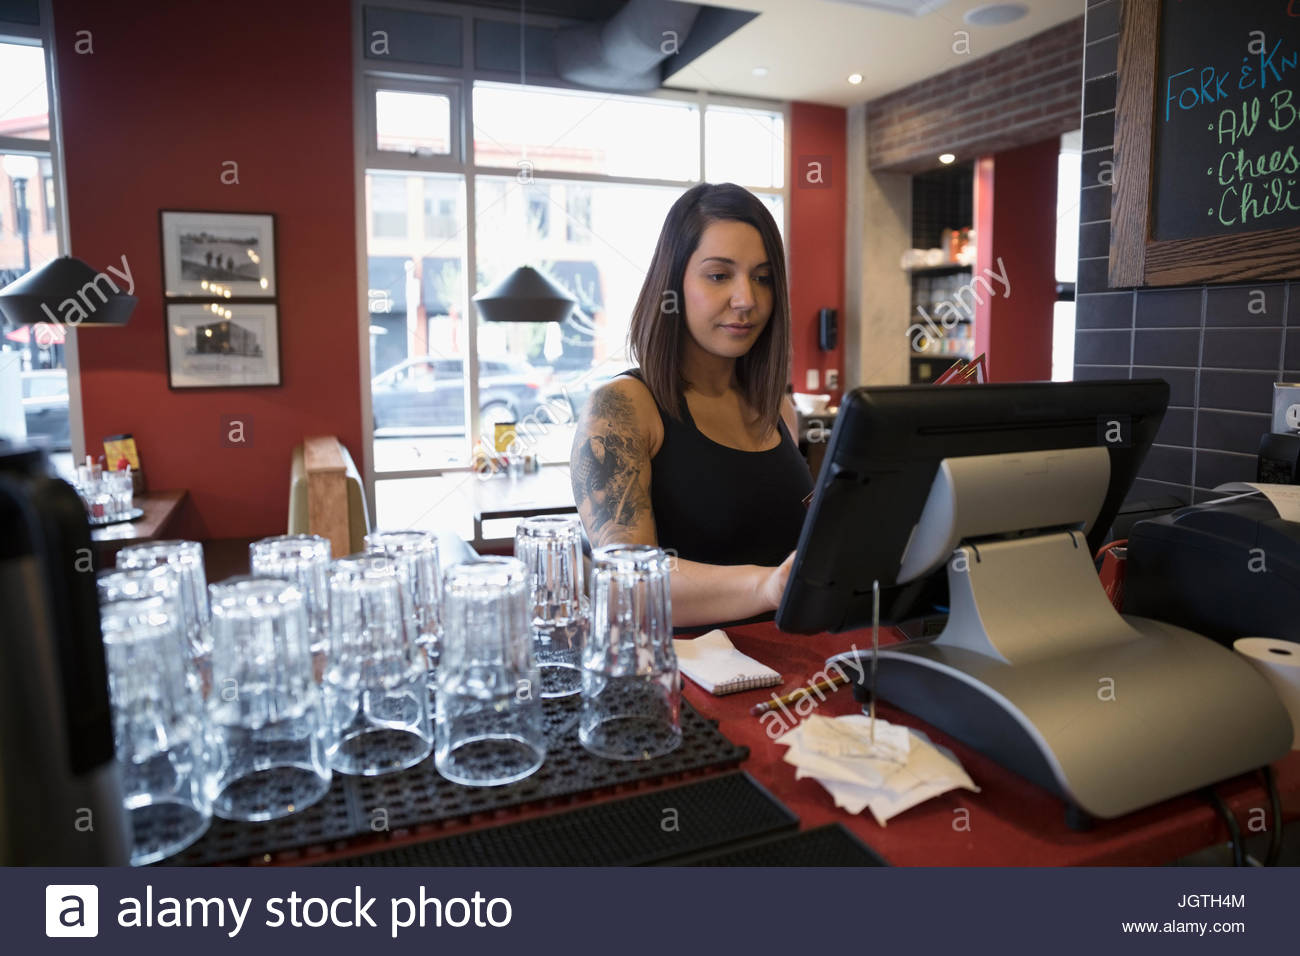 Tattooed waitress using computer, inputting order in restaurant - Stock Image